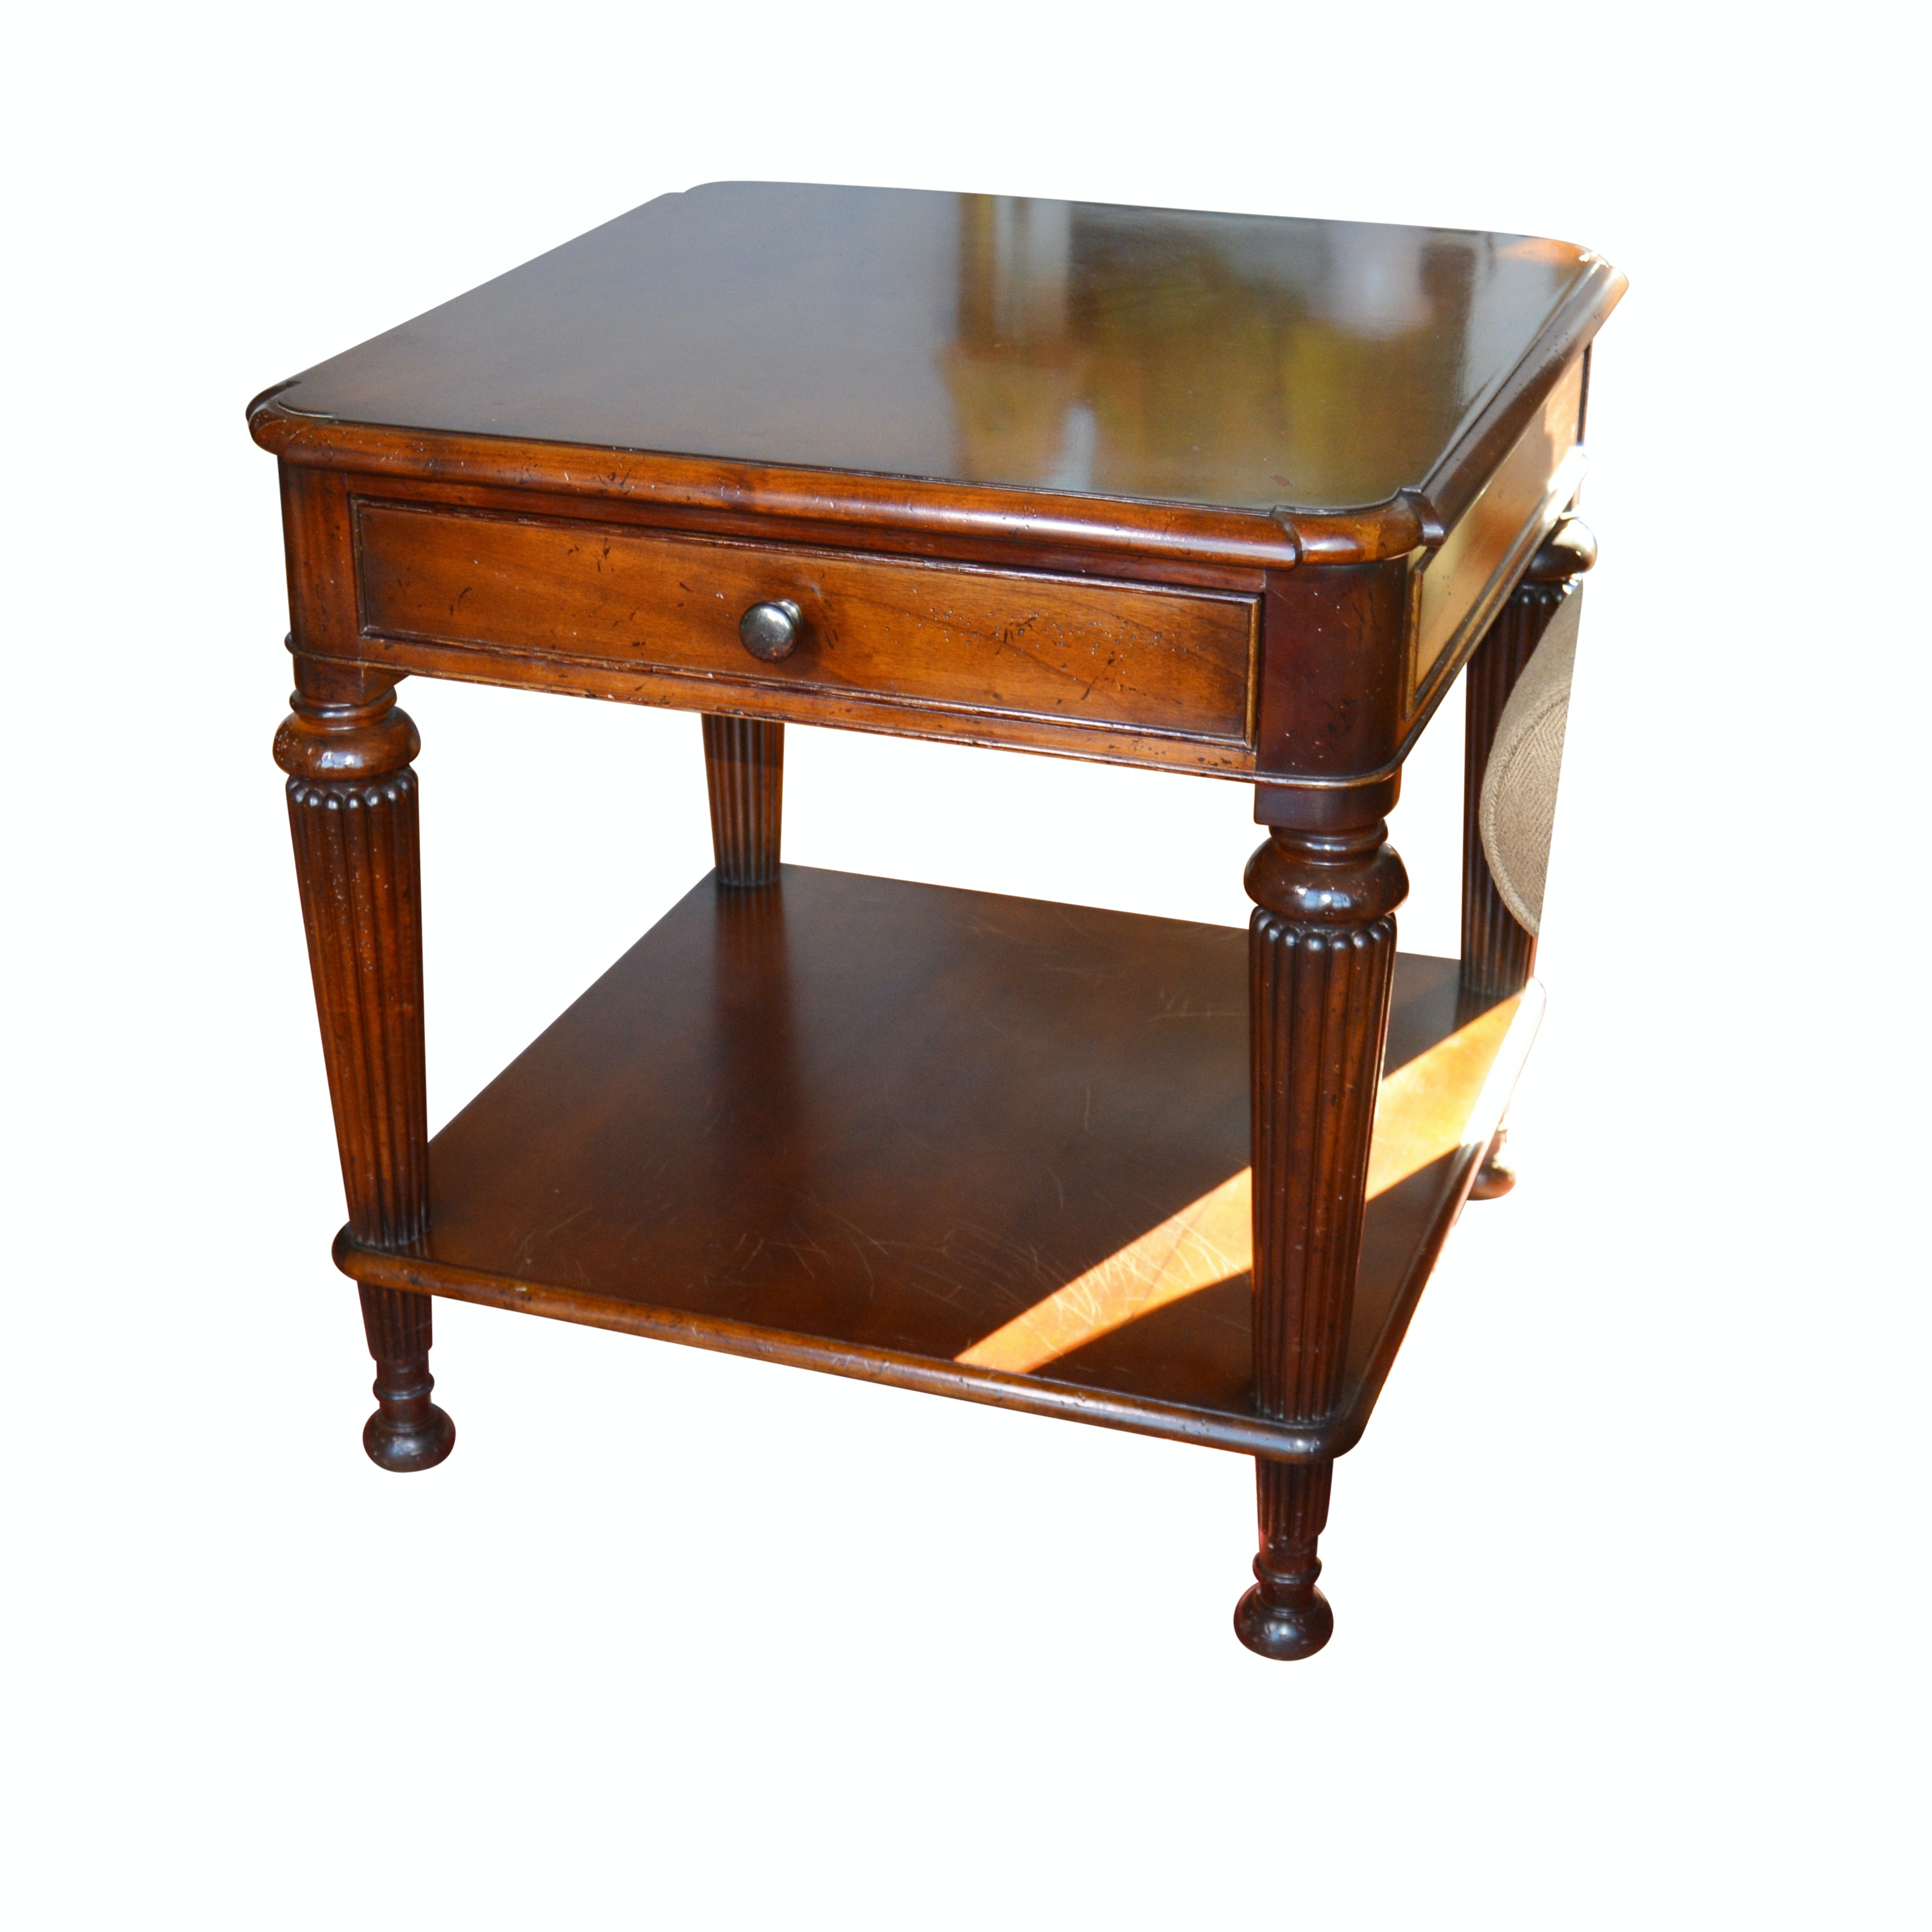 Contemporary Mahogany End Table by Milling Road, Baker Furniture